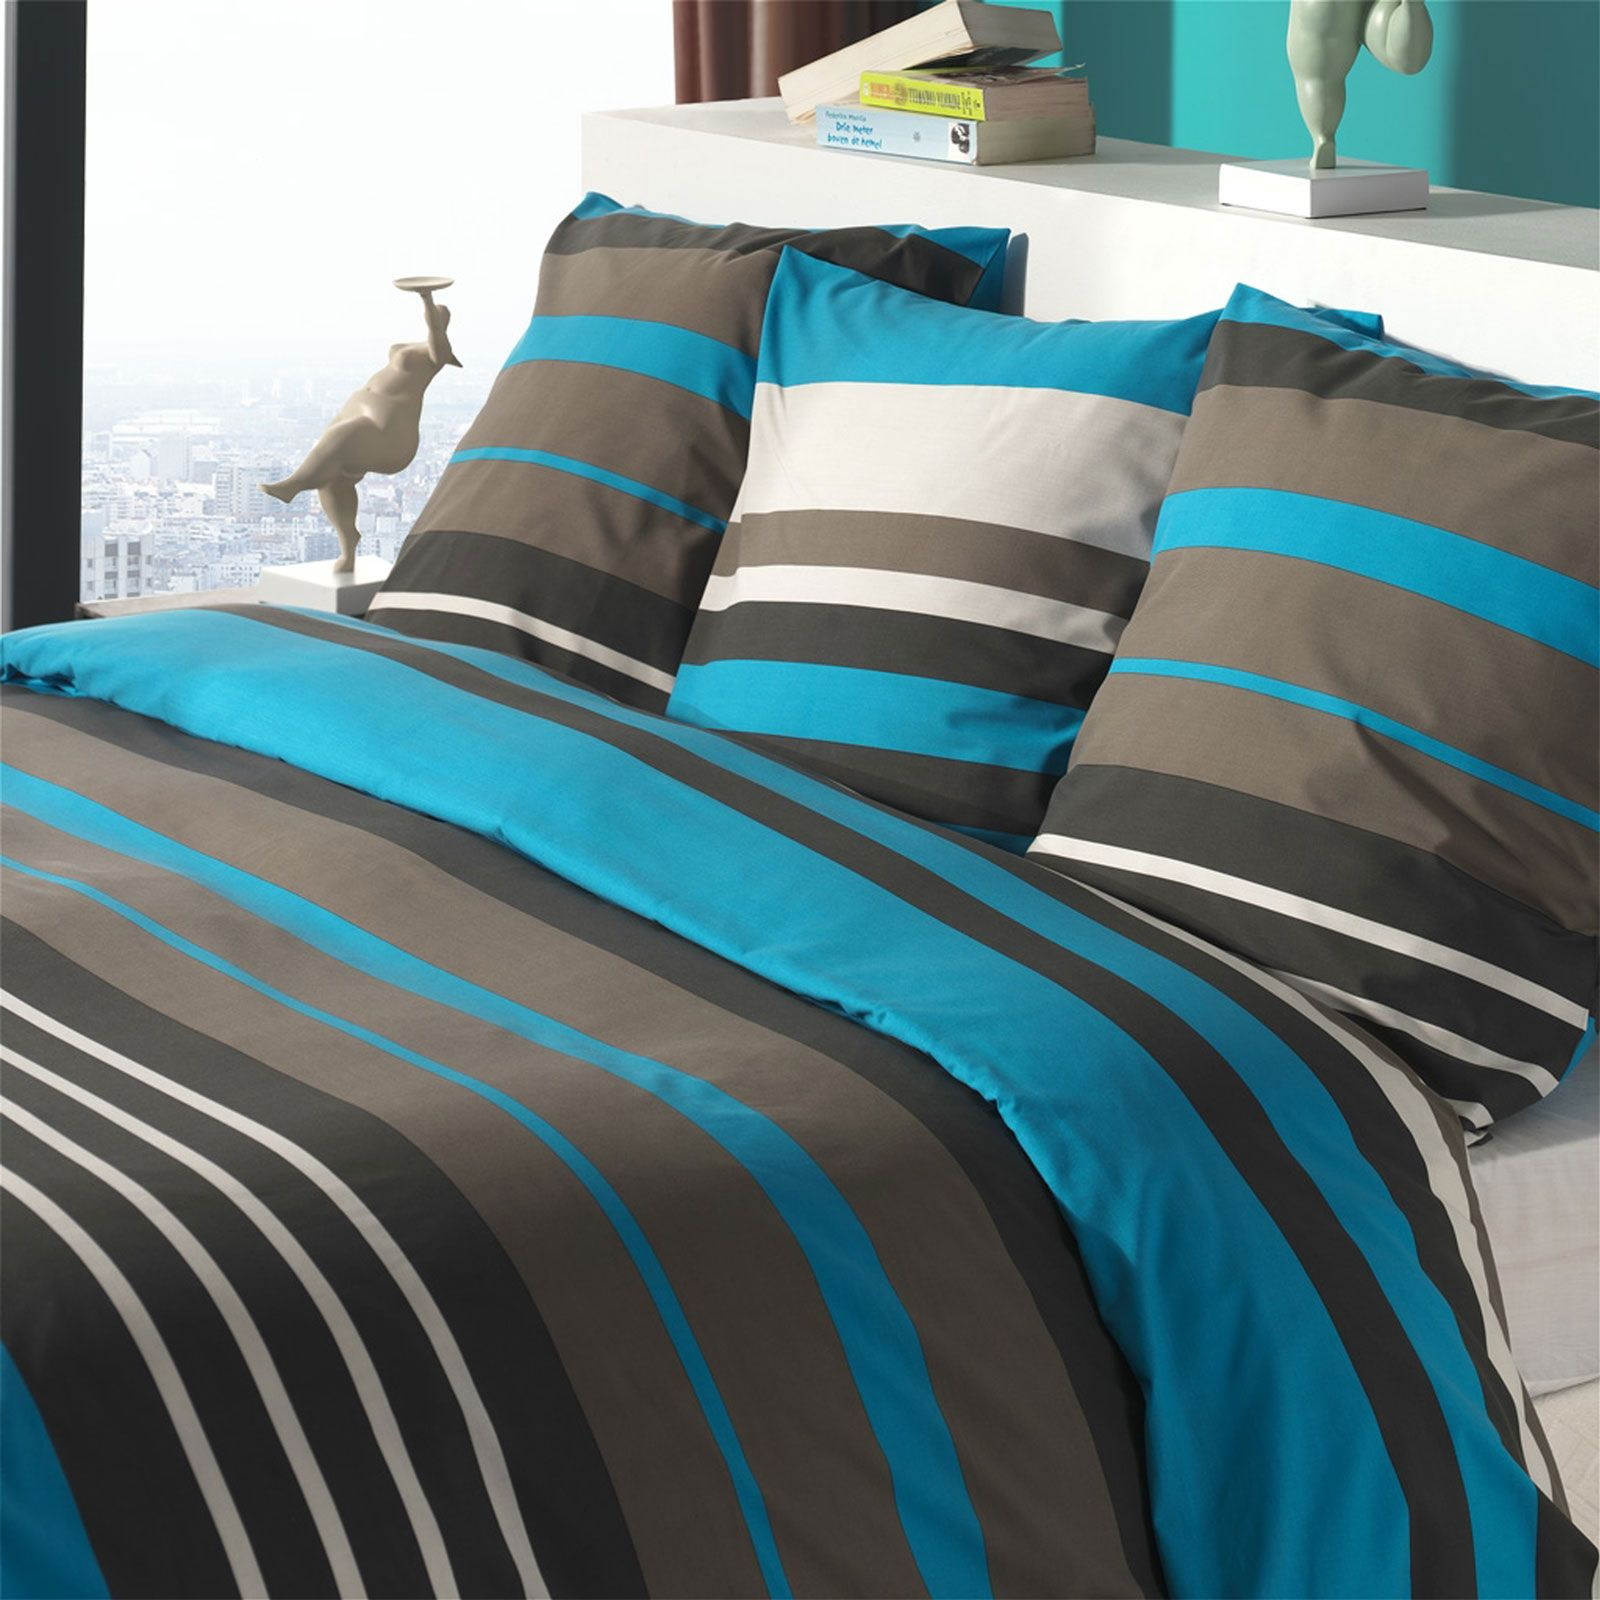 blanc d agate nuance housse de couette taie turquoise brandalley. Black Bedroom Furniture Sets. Home Design Ideas